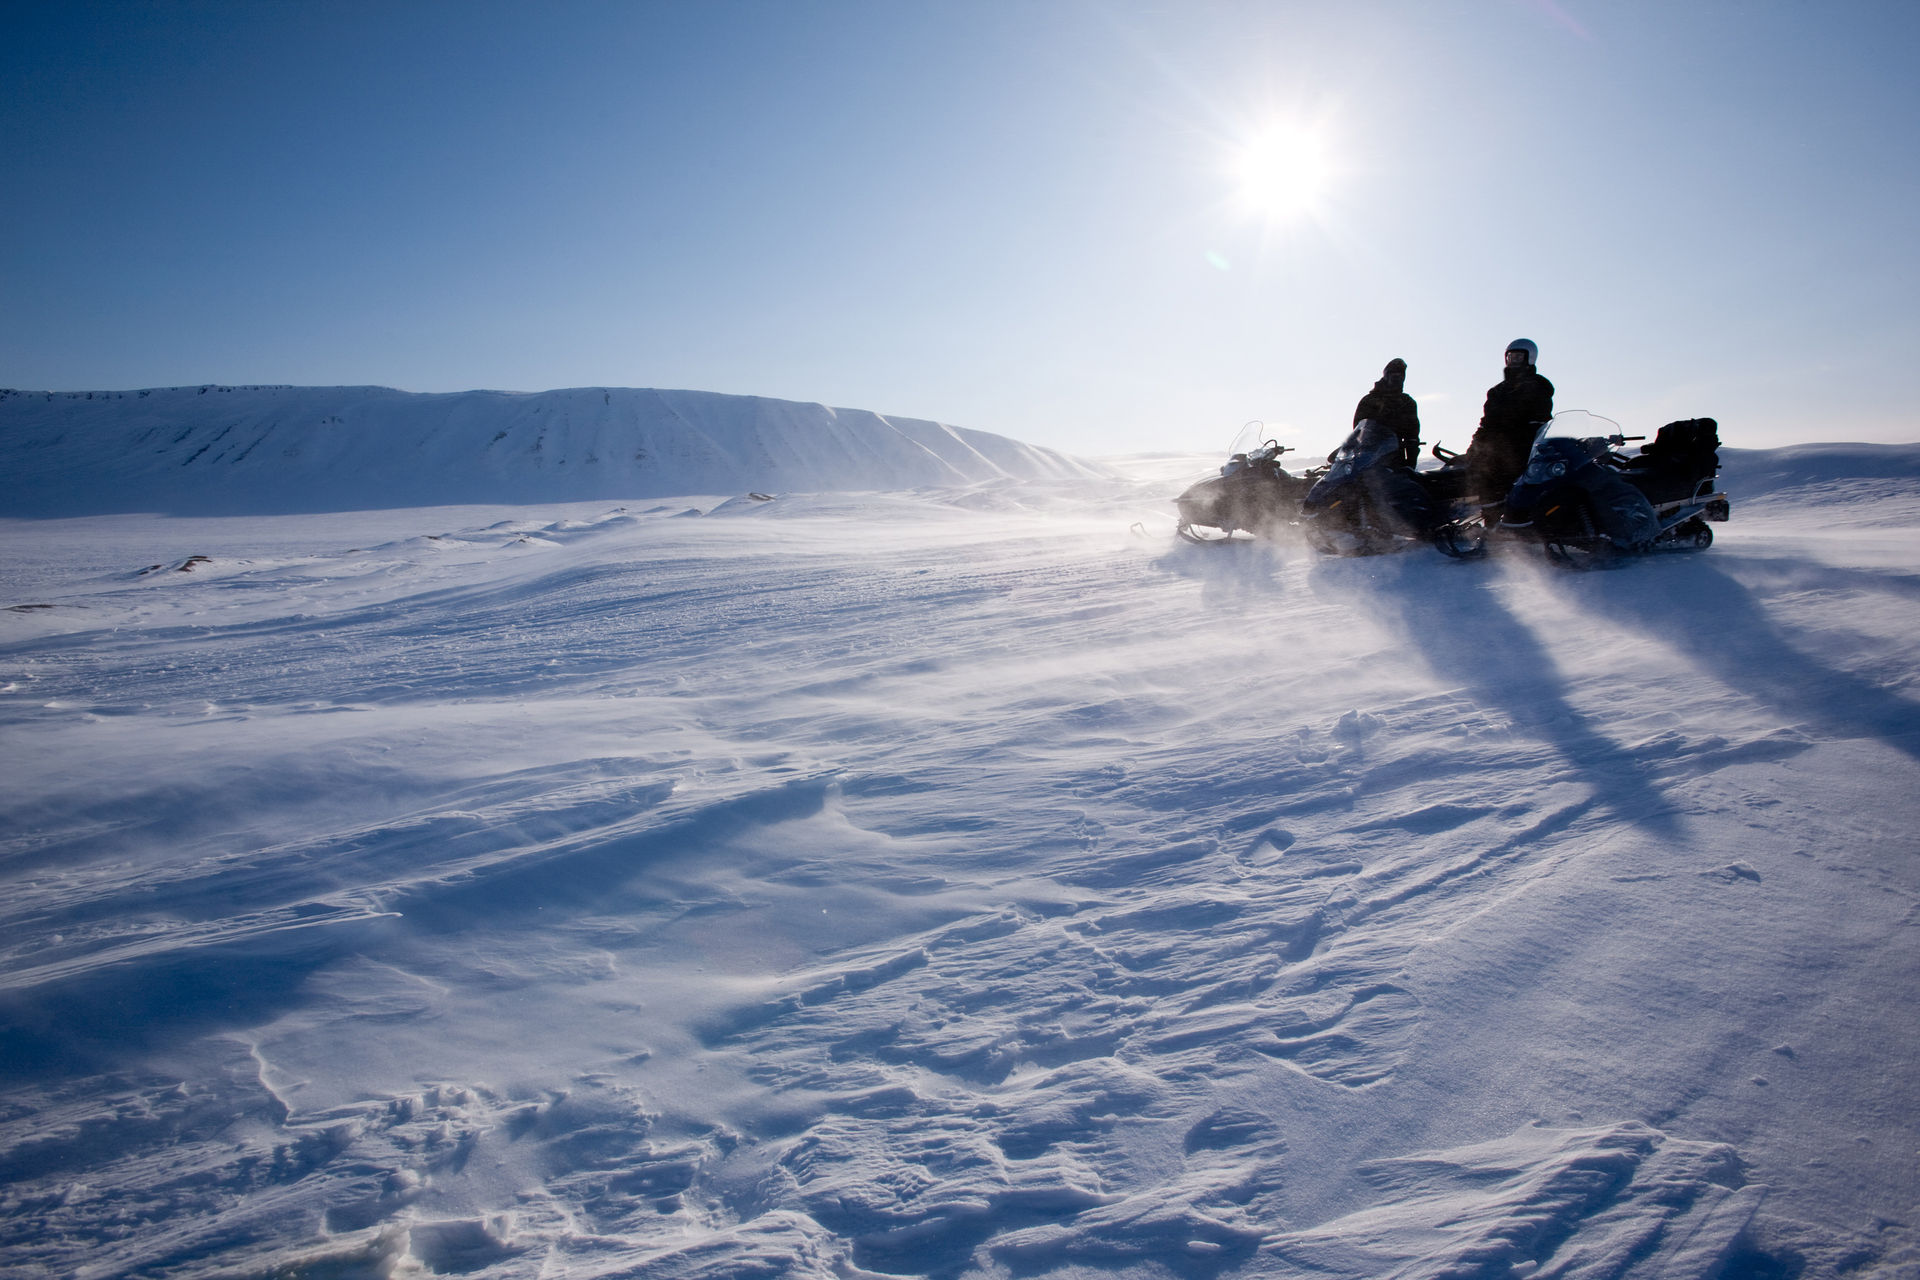 Winter fishing with snowmobile - Wilderness adventure